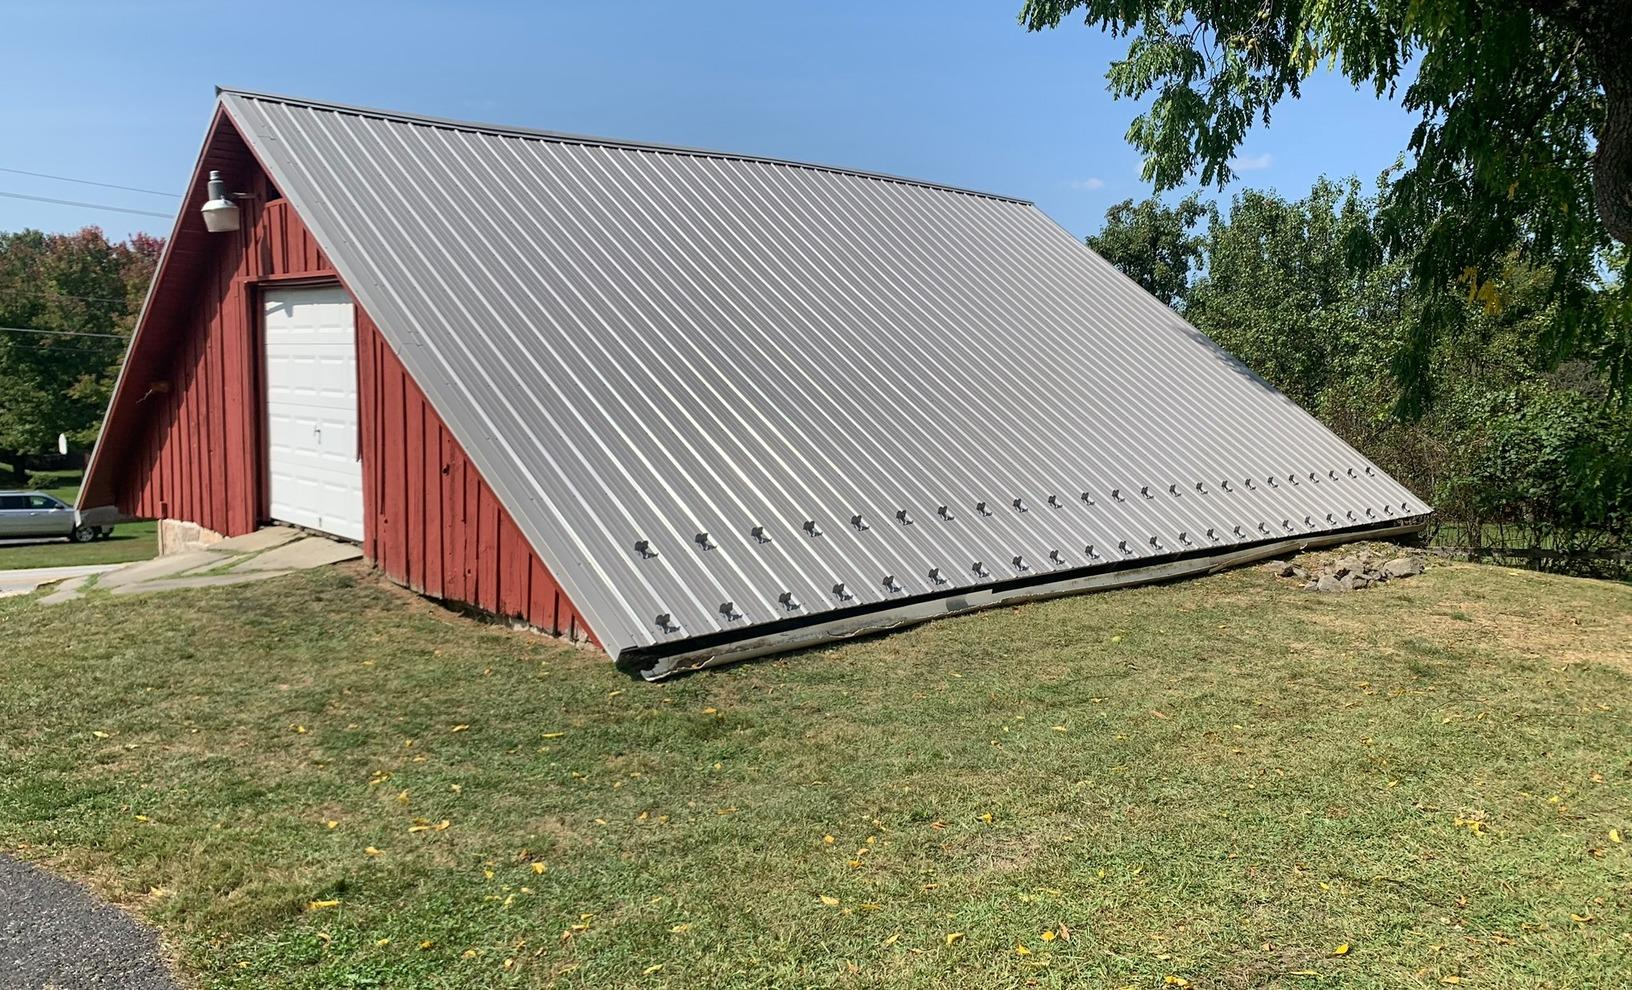 Corrugated Metal Roofing Panels Installed on this barn in Dillsburg, Pa - After Photo